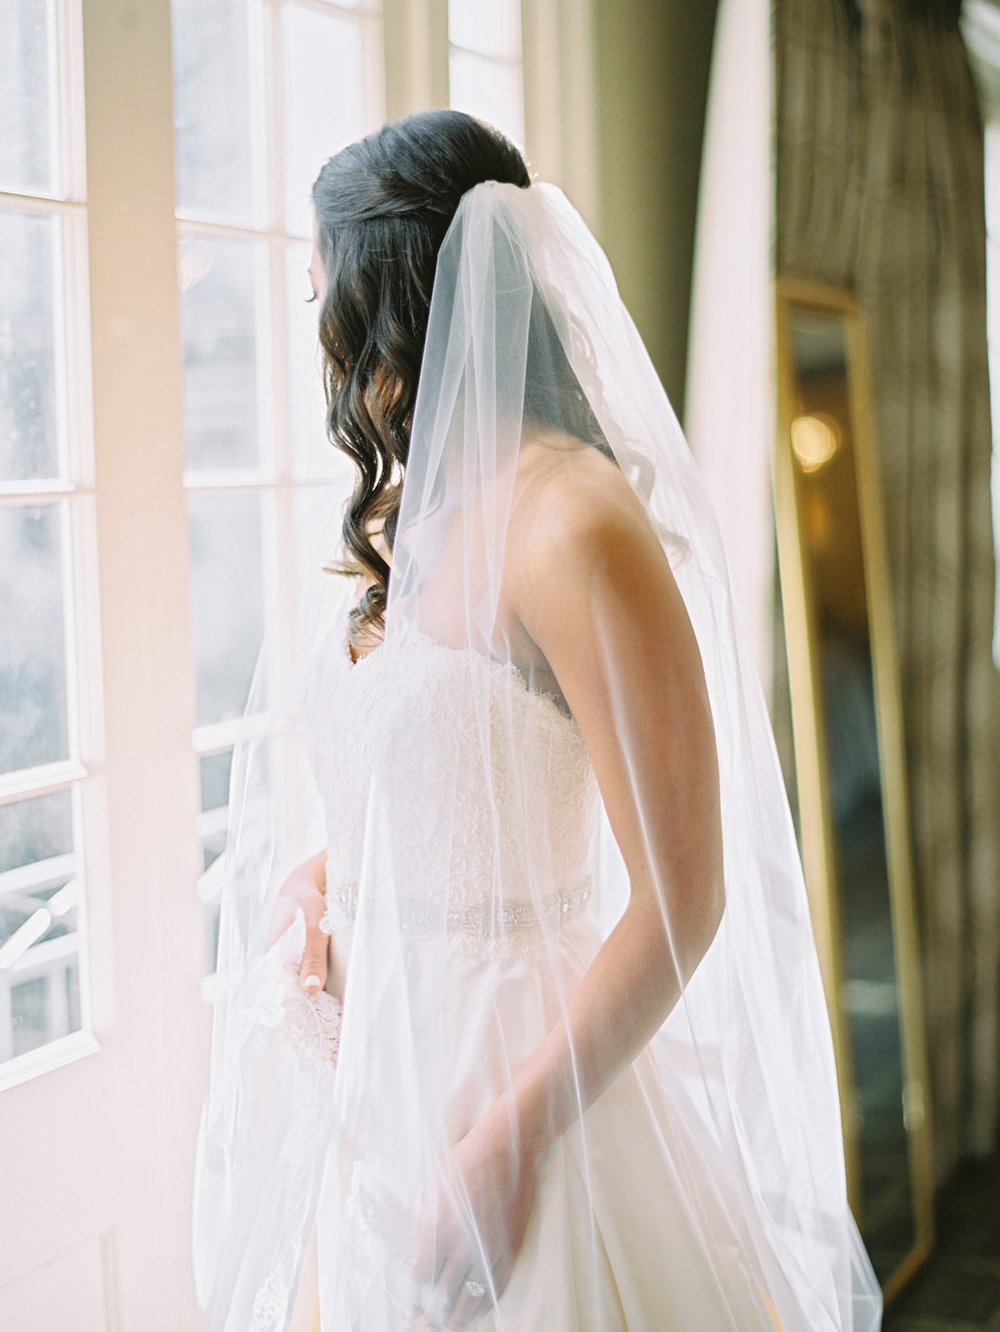 Wedding Planning | New Orleans Wedding | French Quarter Wedding | Sapphire Events | Ryan Ray Photography | White and Green Wedding | Formal Black Tie Wedding | Monique Lhuillier Dress | Long Curls | Bridal Portrait